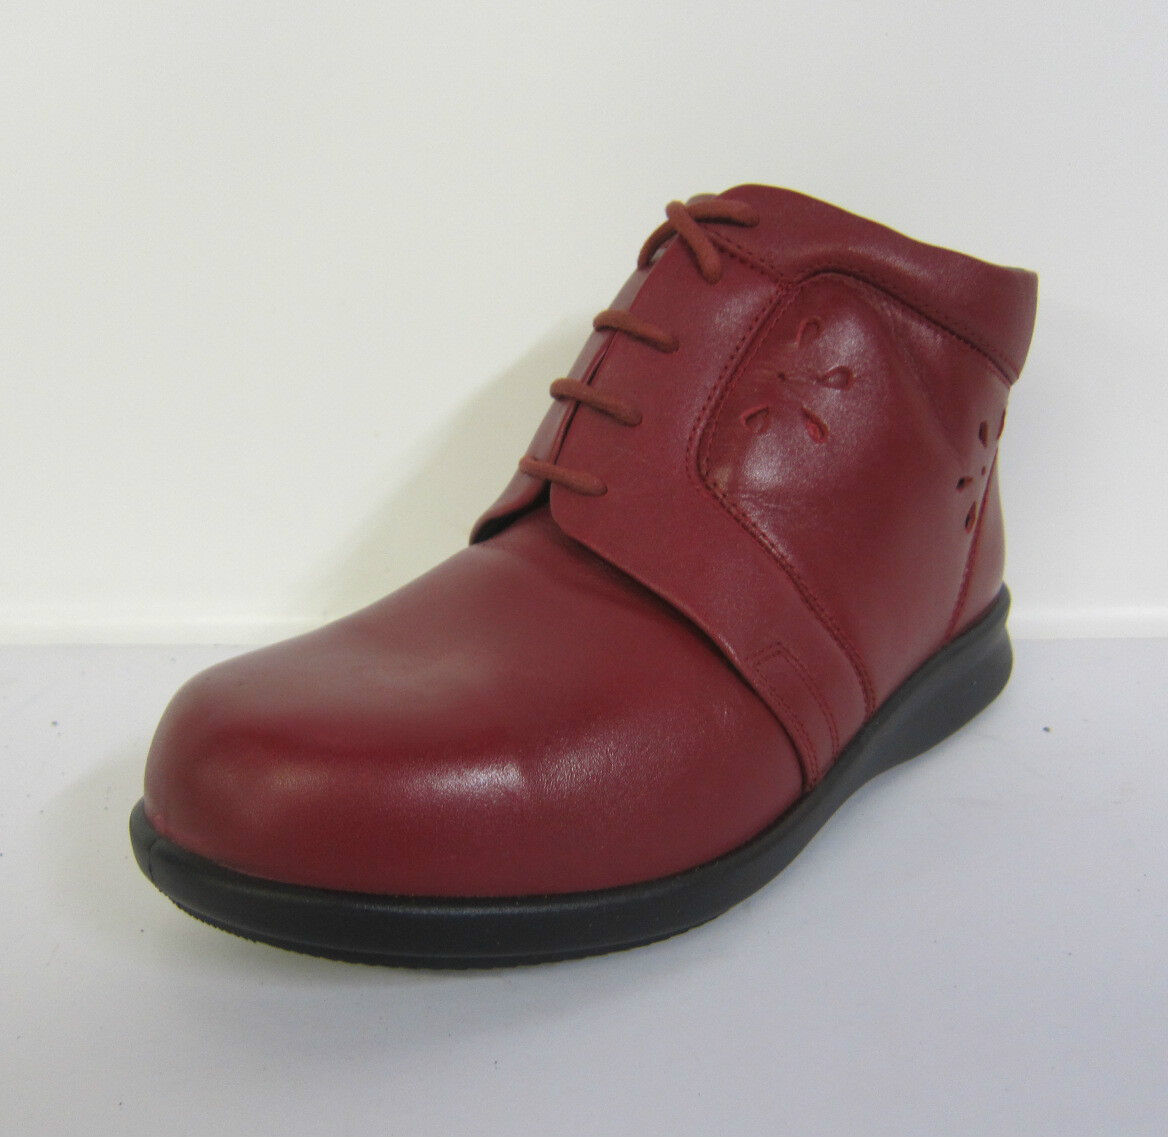 LADIES  RED LEATHER EASY FITTING B ANKLE BOOTS 73160R FITTING EASY E 433739